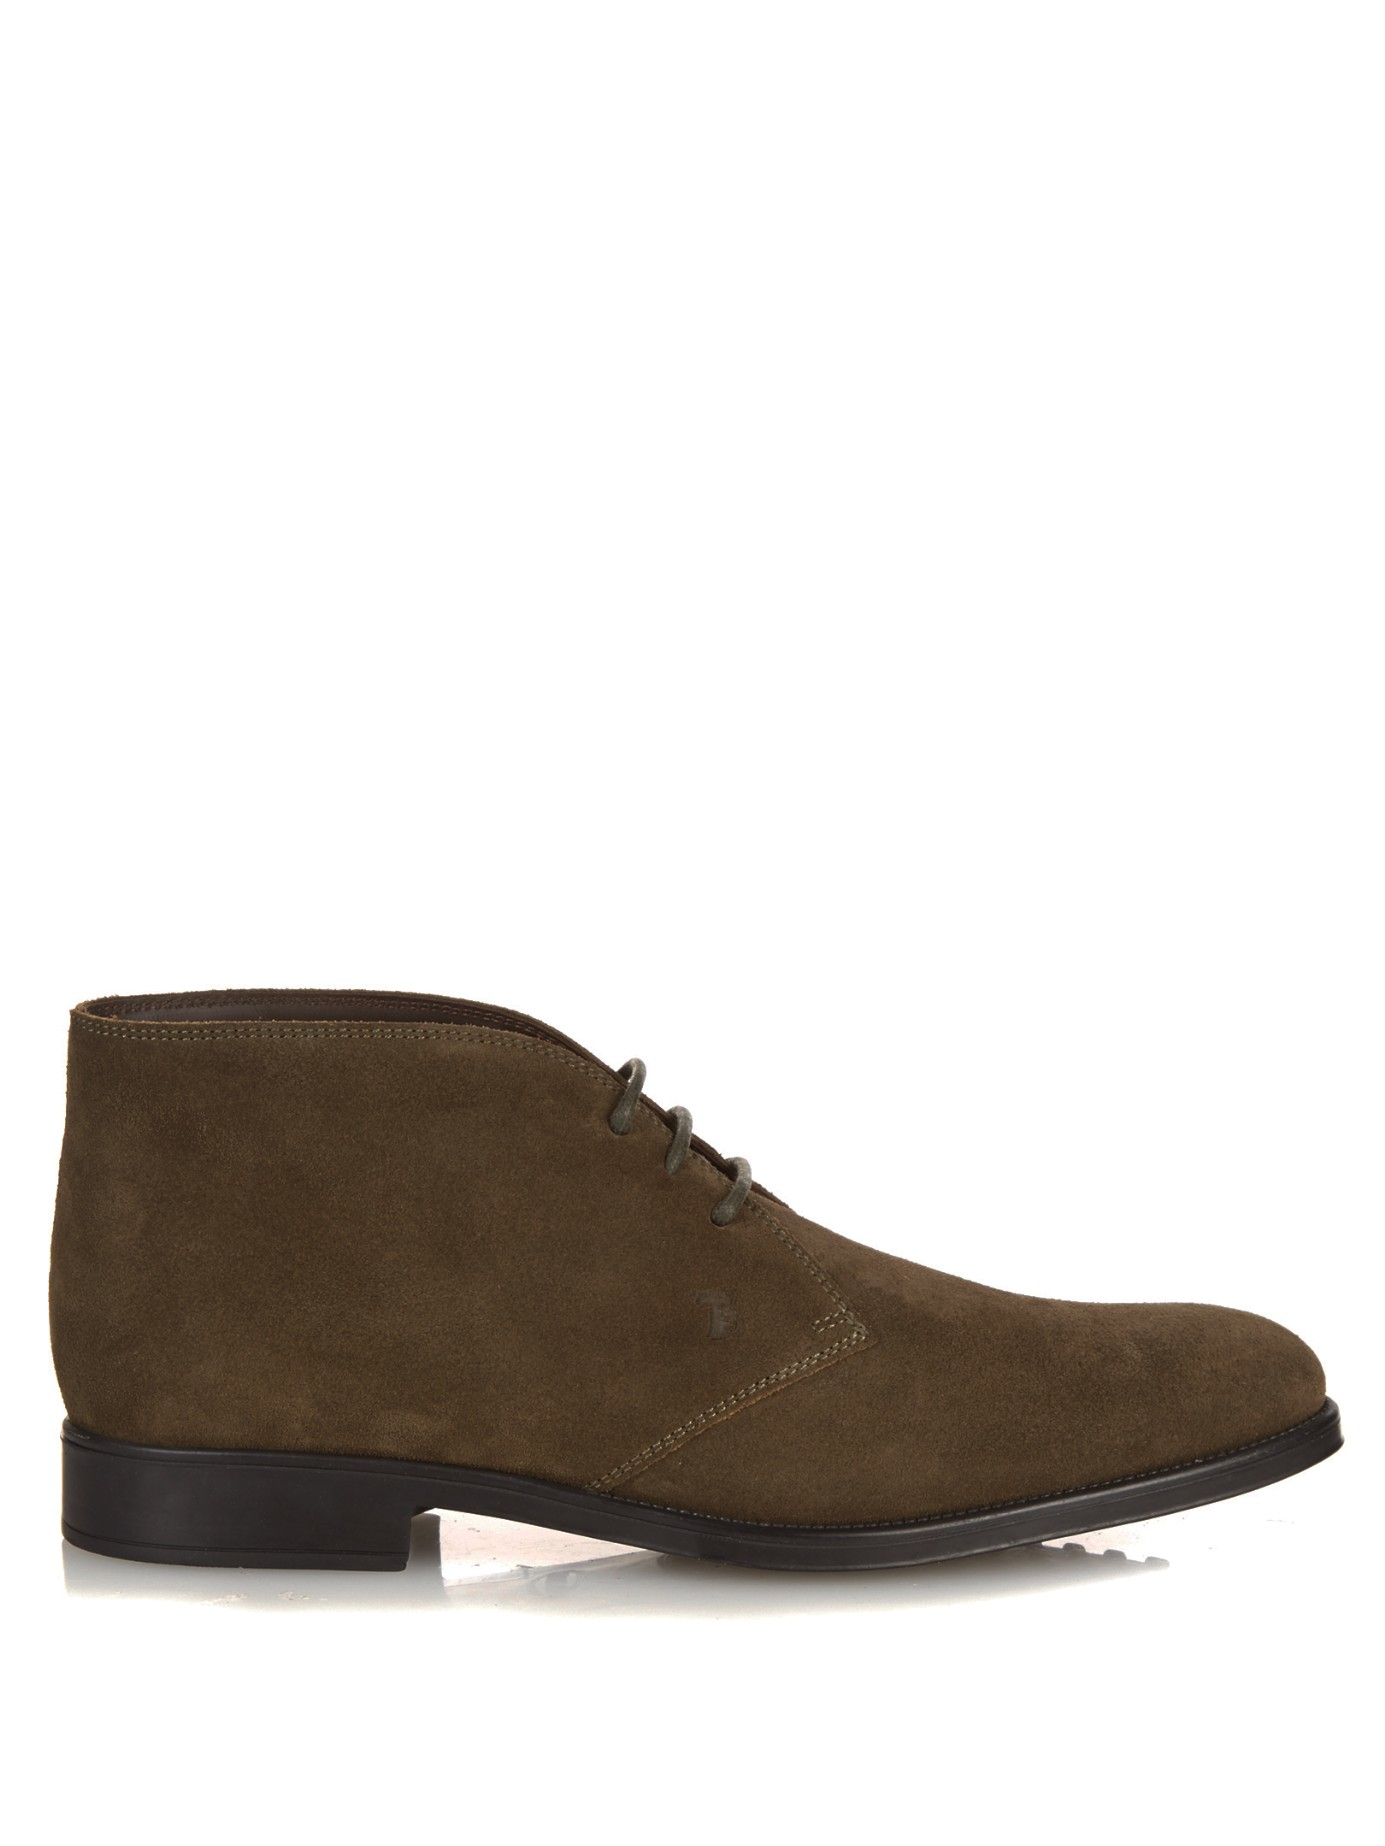 tod 39 s polacco suede desert boots in brown for men lyst. Black Bedroom Furniture Sets. Home Design Ideas